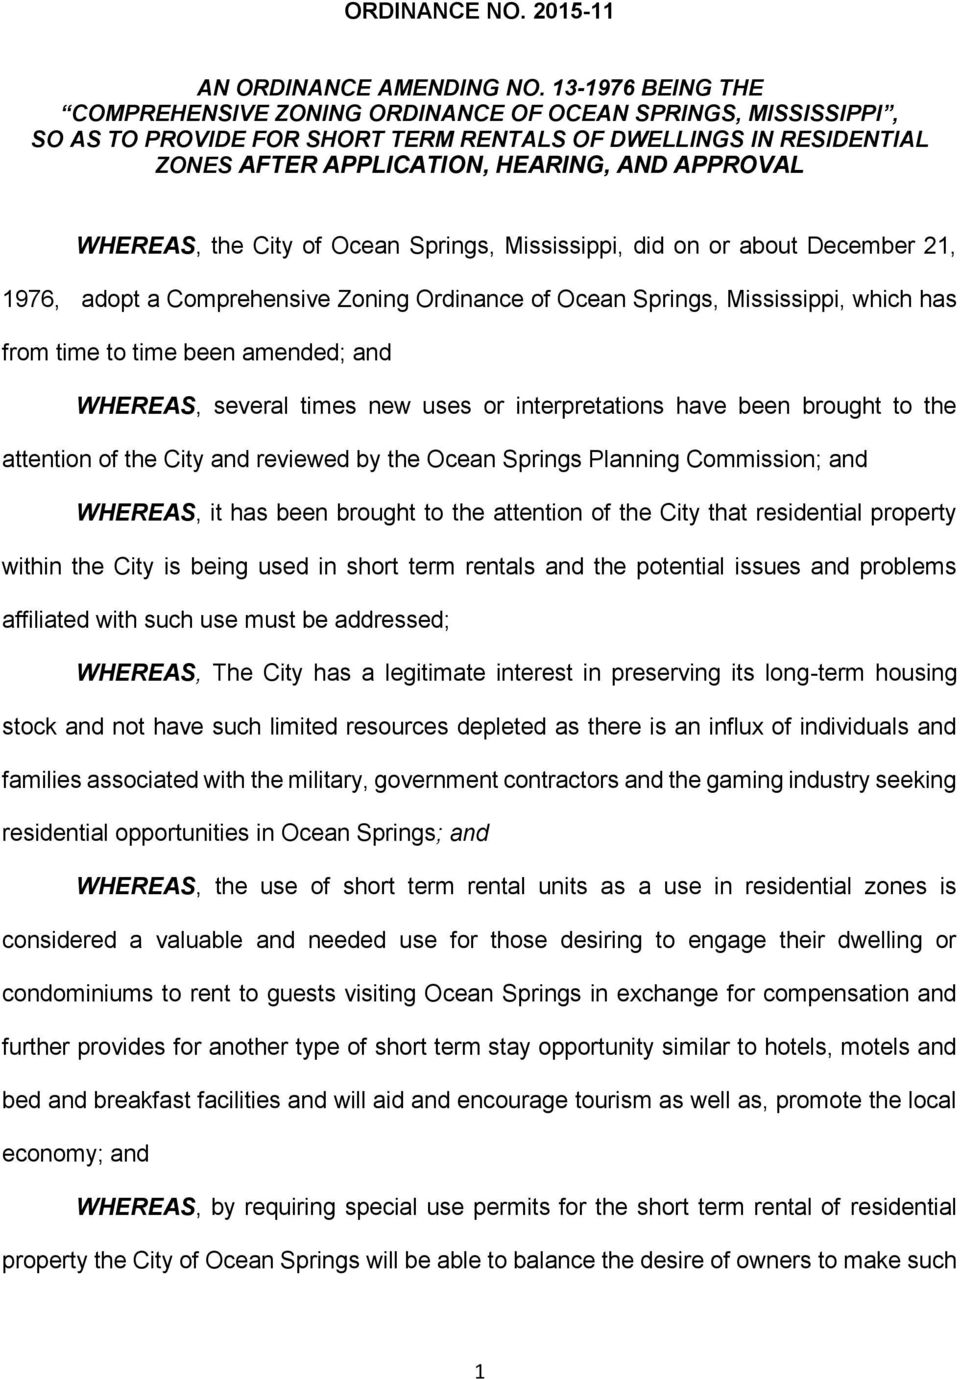 WHEREAS, the City of Ocean Springs, Mississippi, did on or about December 21, 1976, adopt a Comprehensive Zoning Ordinance of Ocean Springs, Mississippi, which has from time to time been amended; and